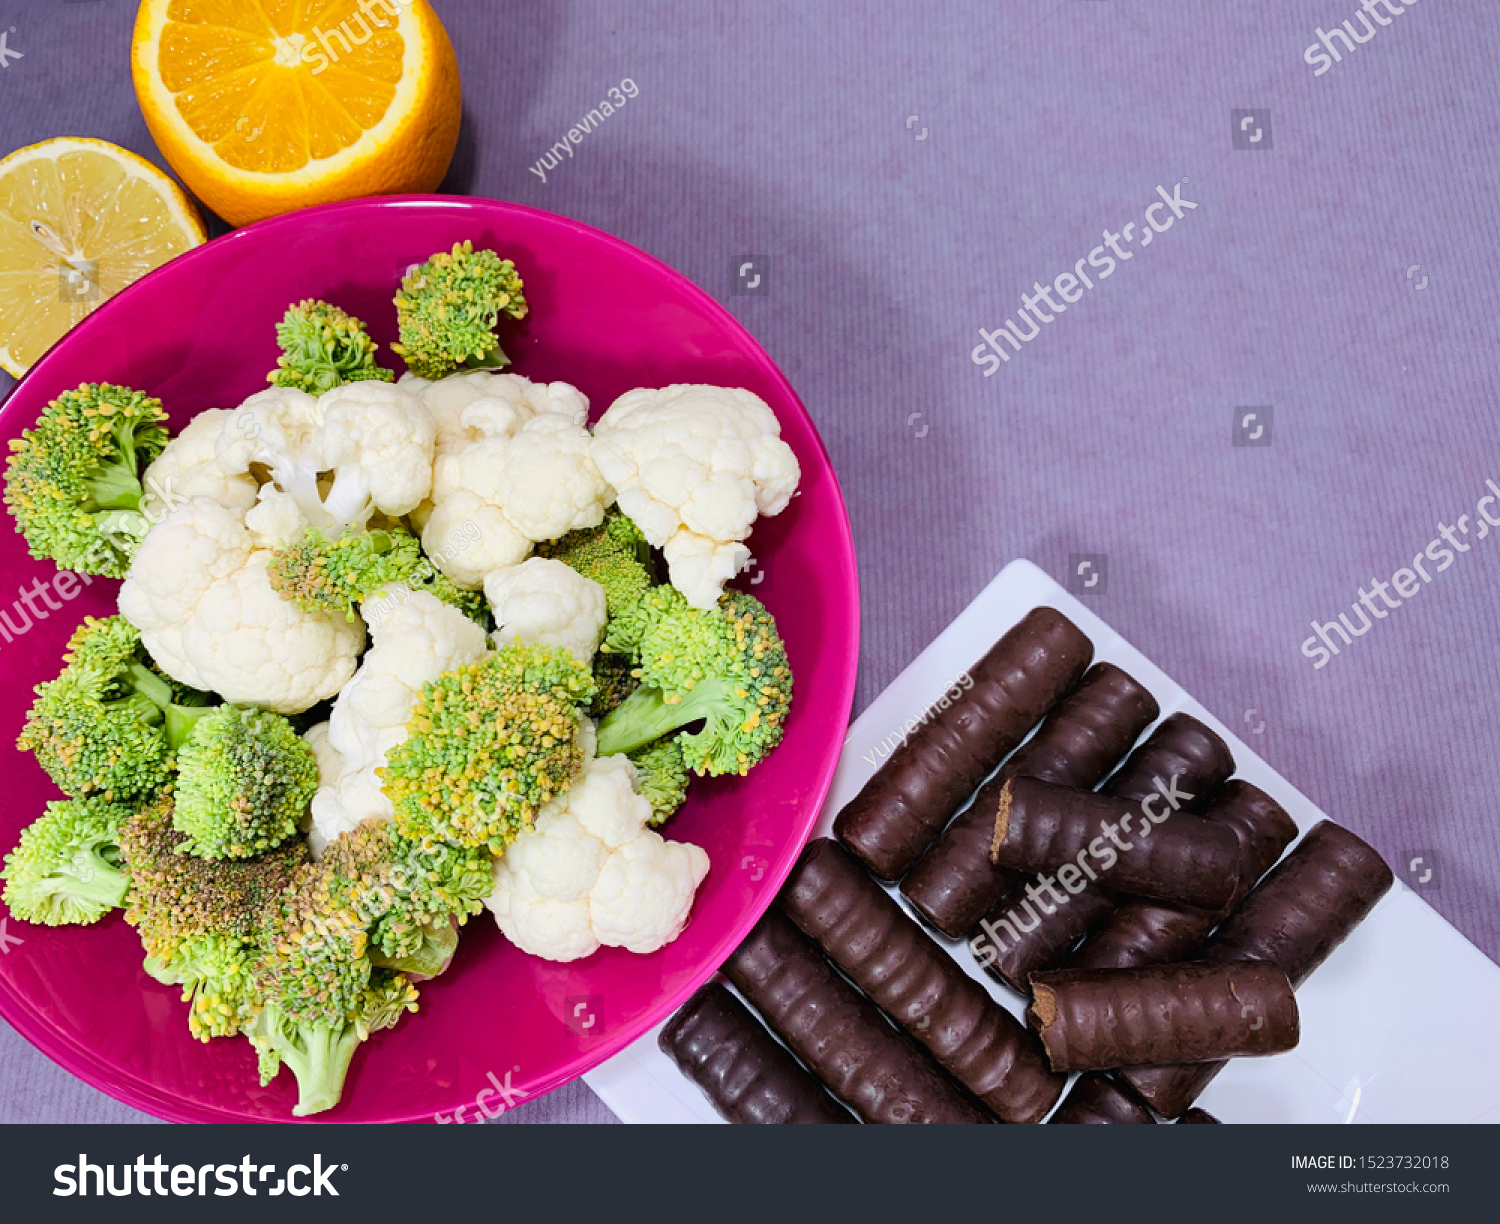 Choice of food, broccoli and chocolate. Plate with vegetables, fruits. Chocolate is a junk food. Choosing a healthy diet. On a diet. #1523732018